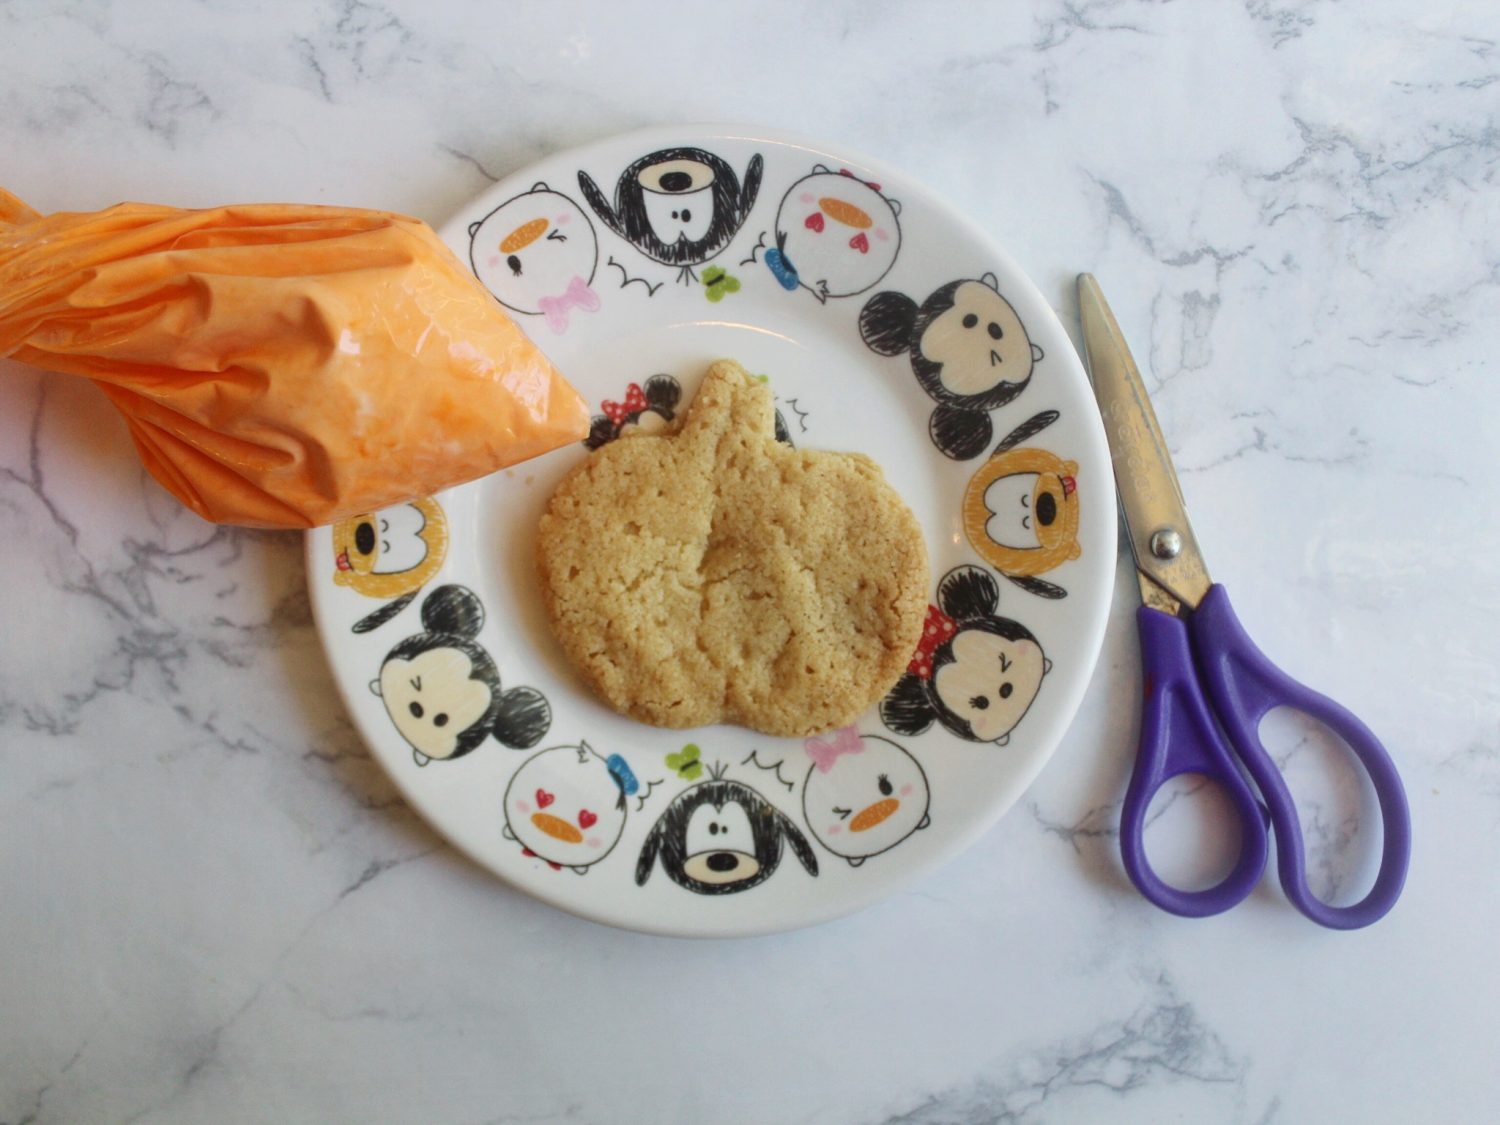 Cookie Decorating Made Easy With Hefty® Slider Bags